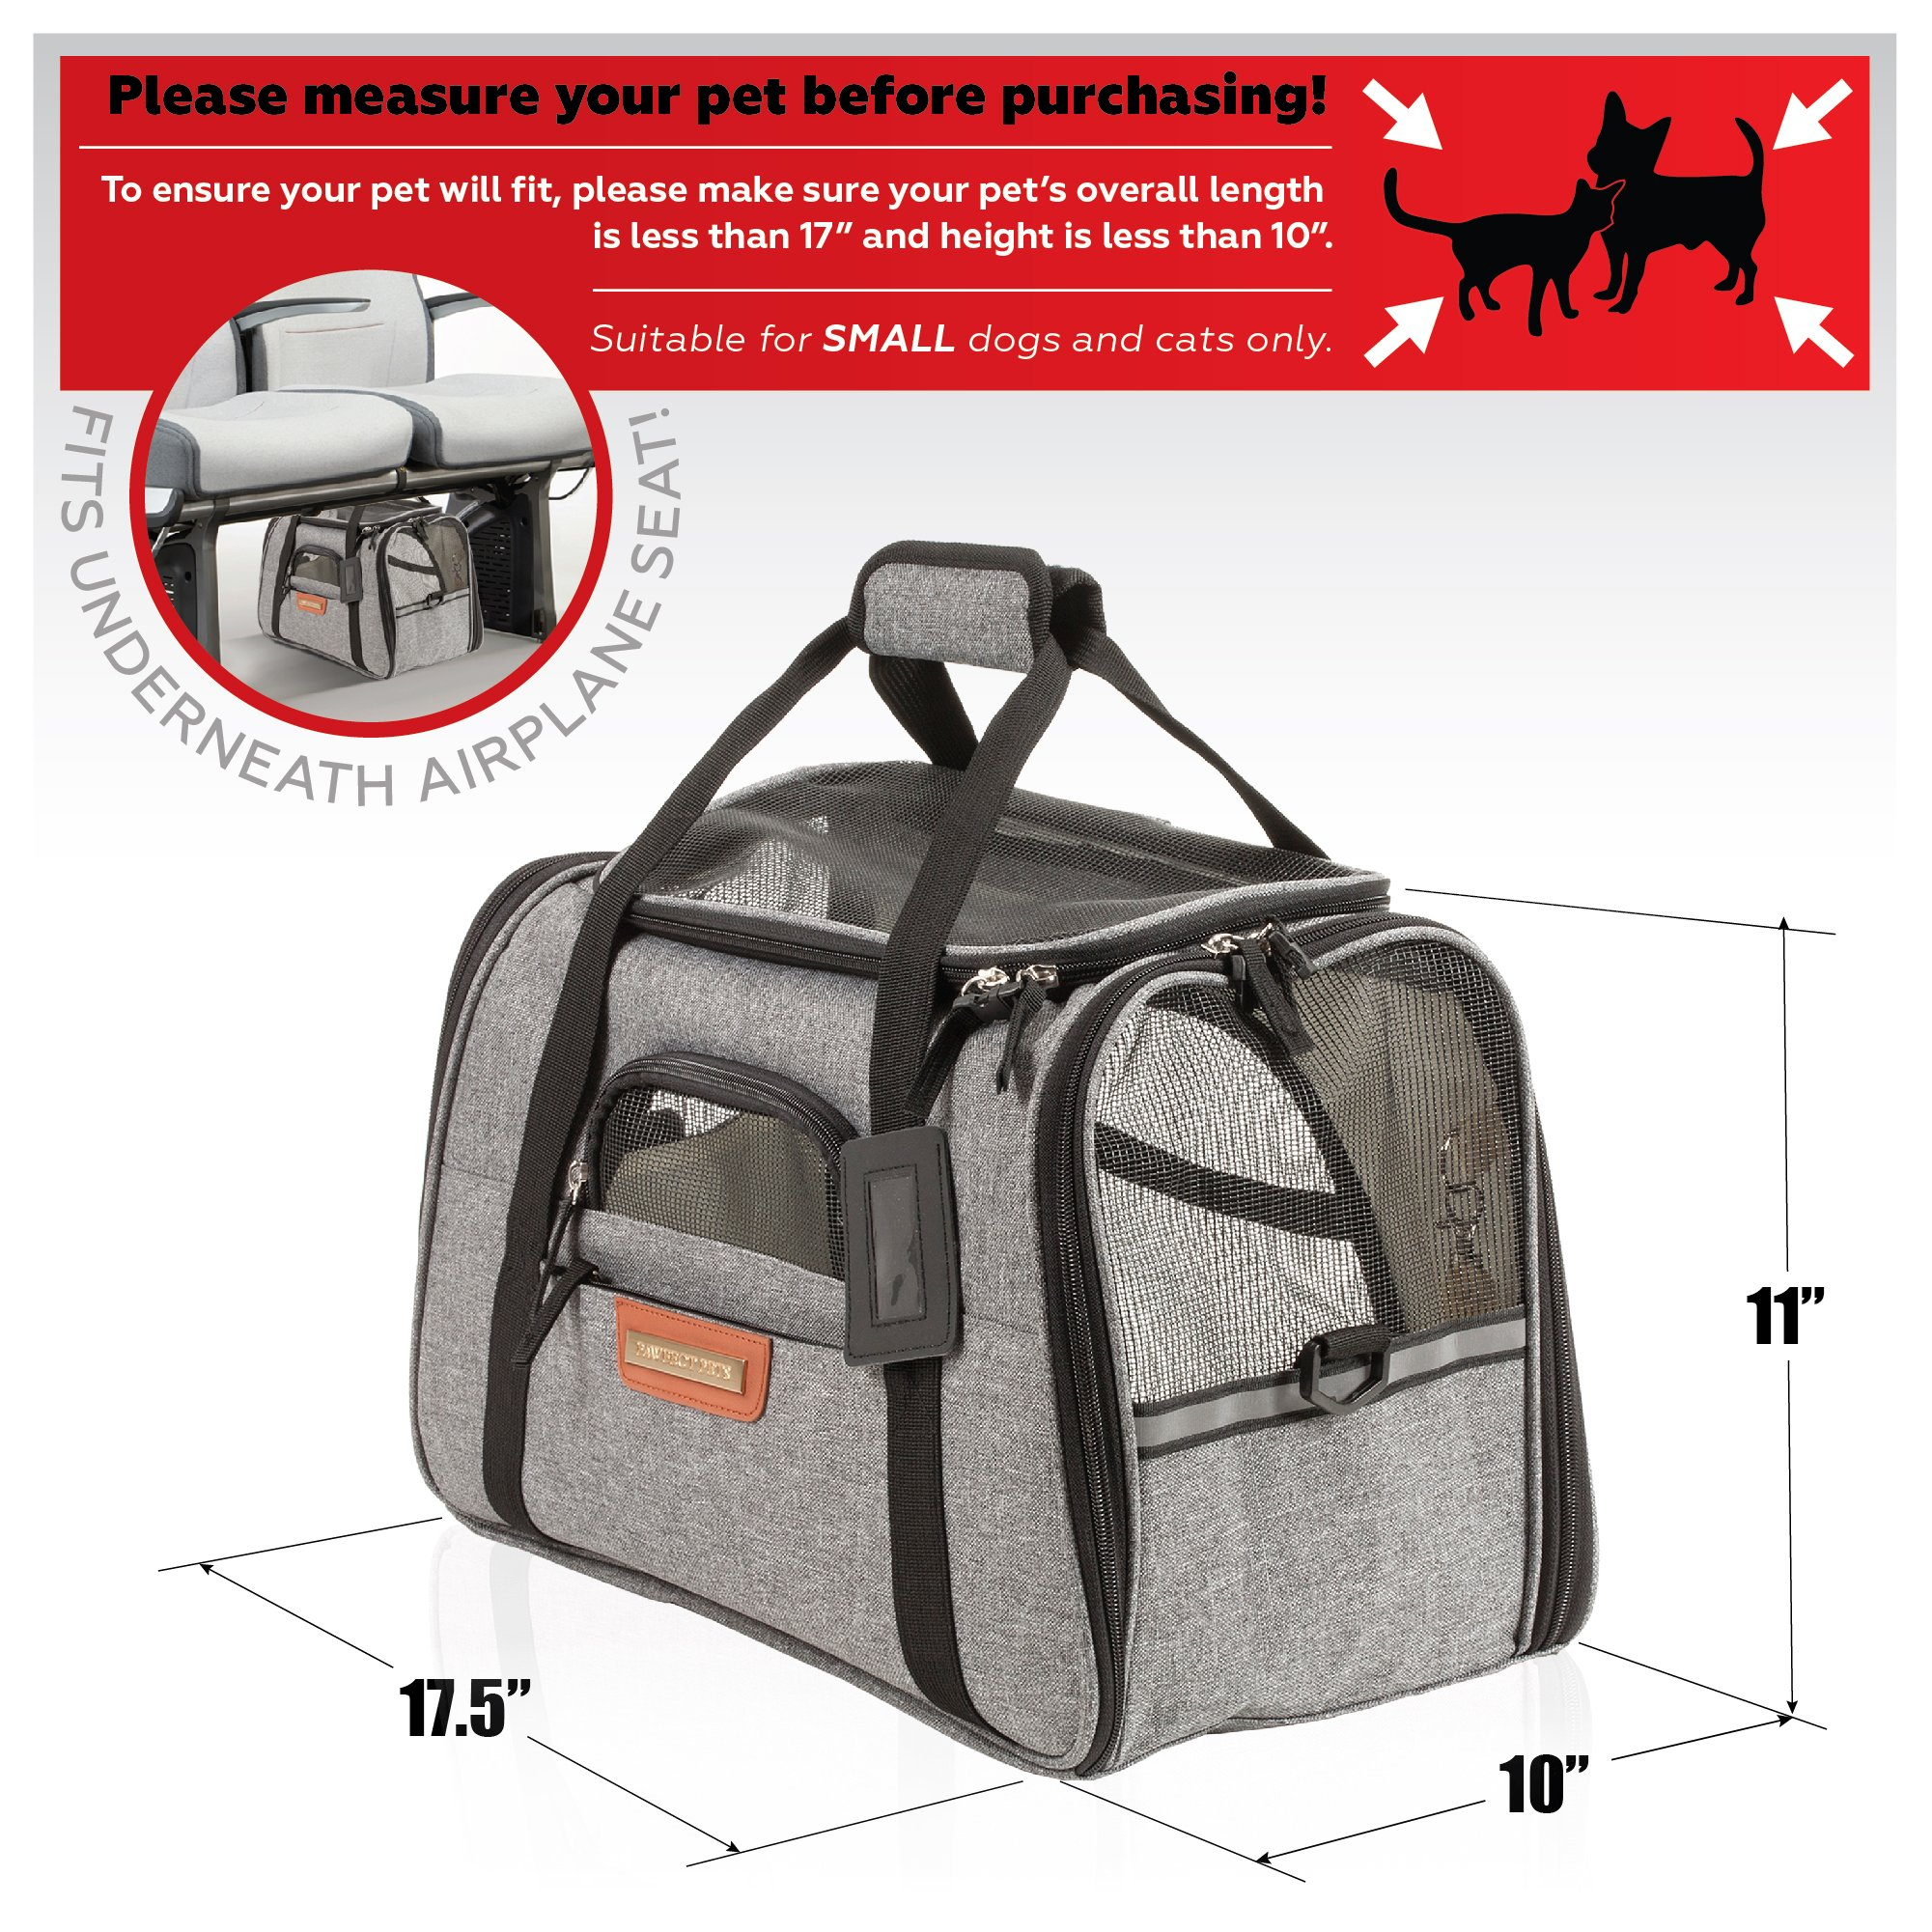 Pawfect Pets Pet Travel Carrier, Soft-Sided with Two Pet Mats for Small Dogs and Cats (Grey) by Pawfect Pets (Image #3)